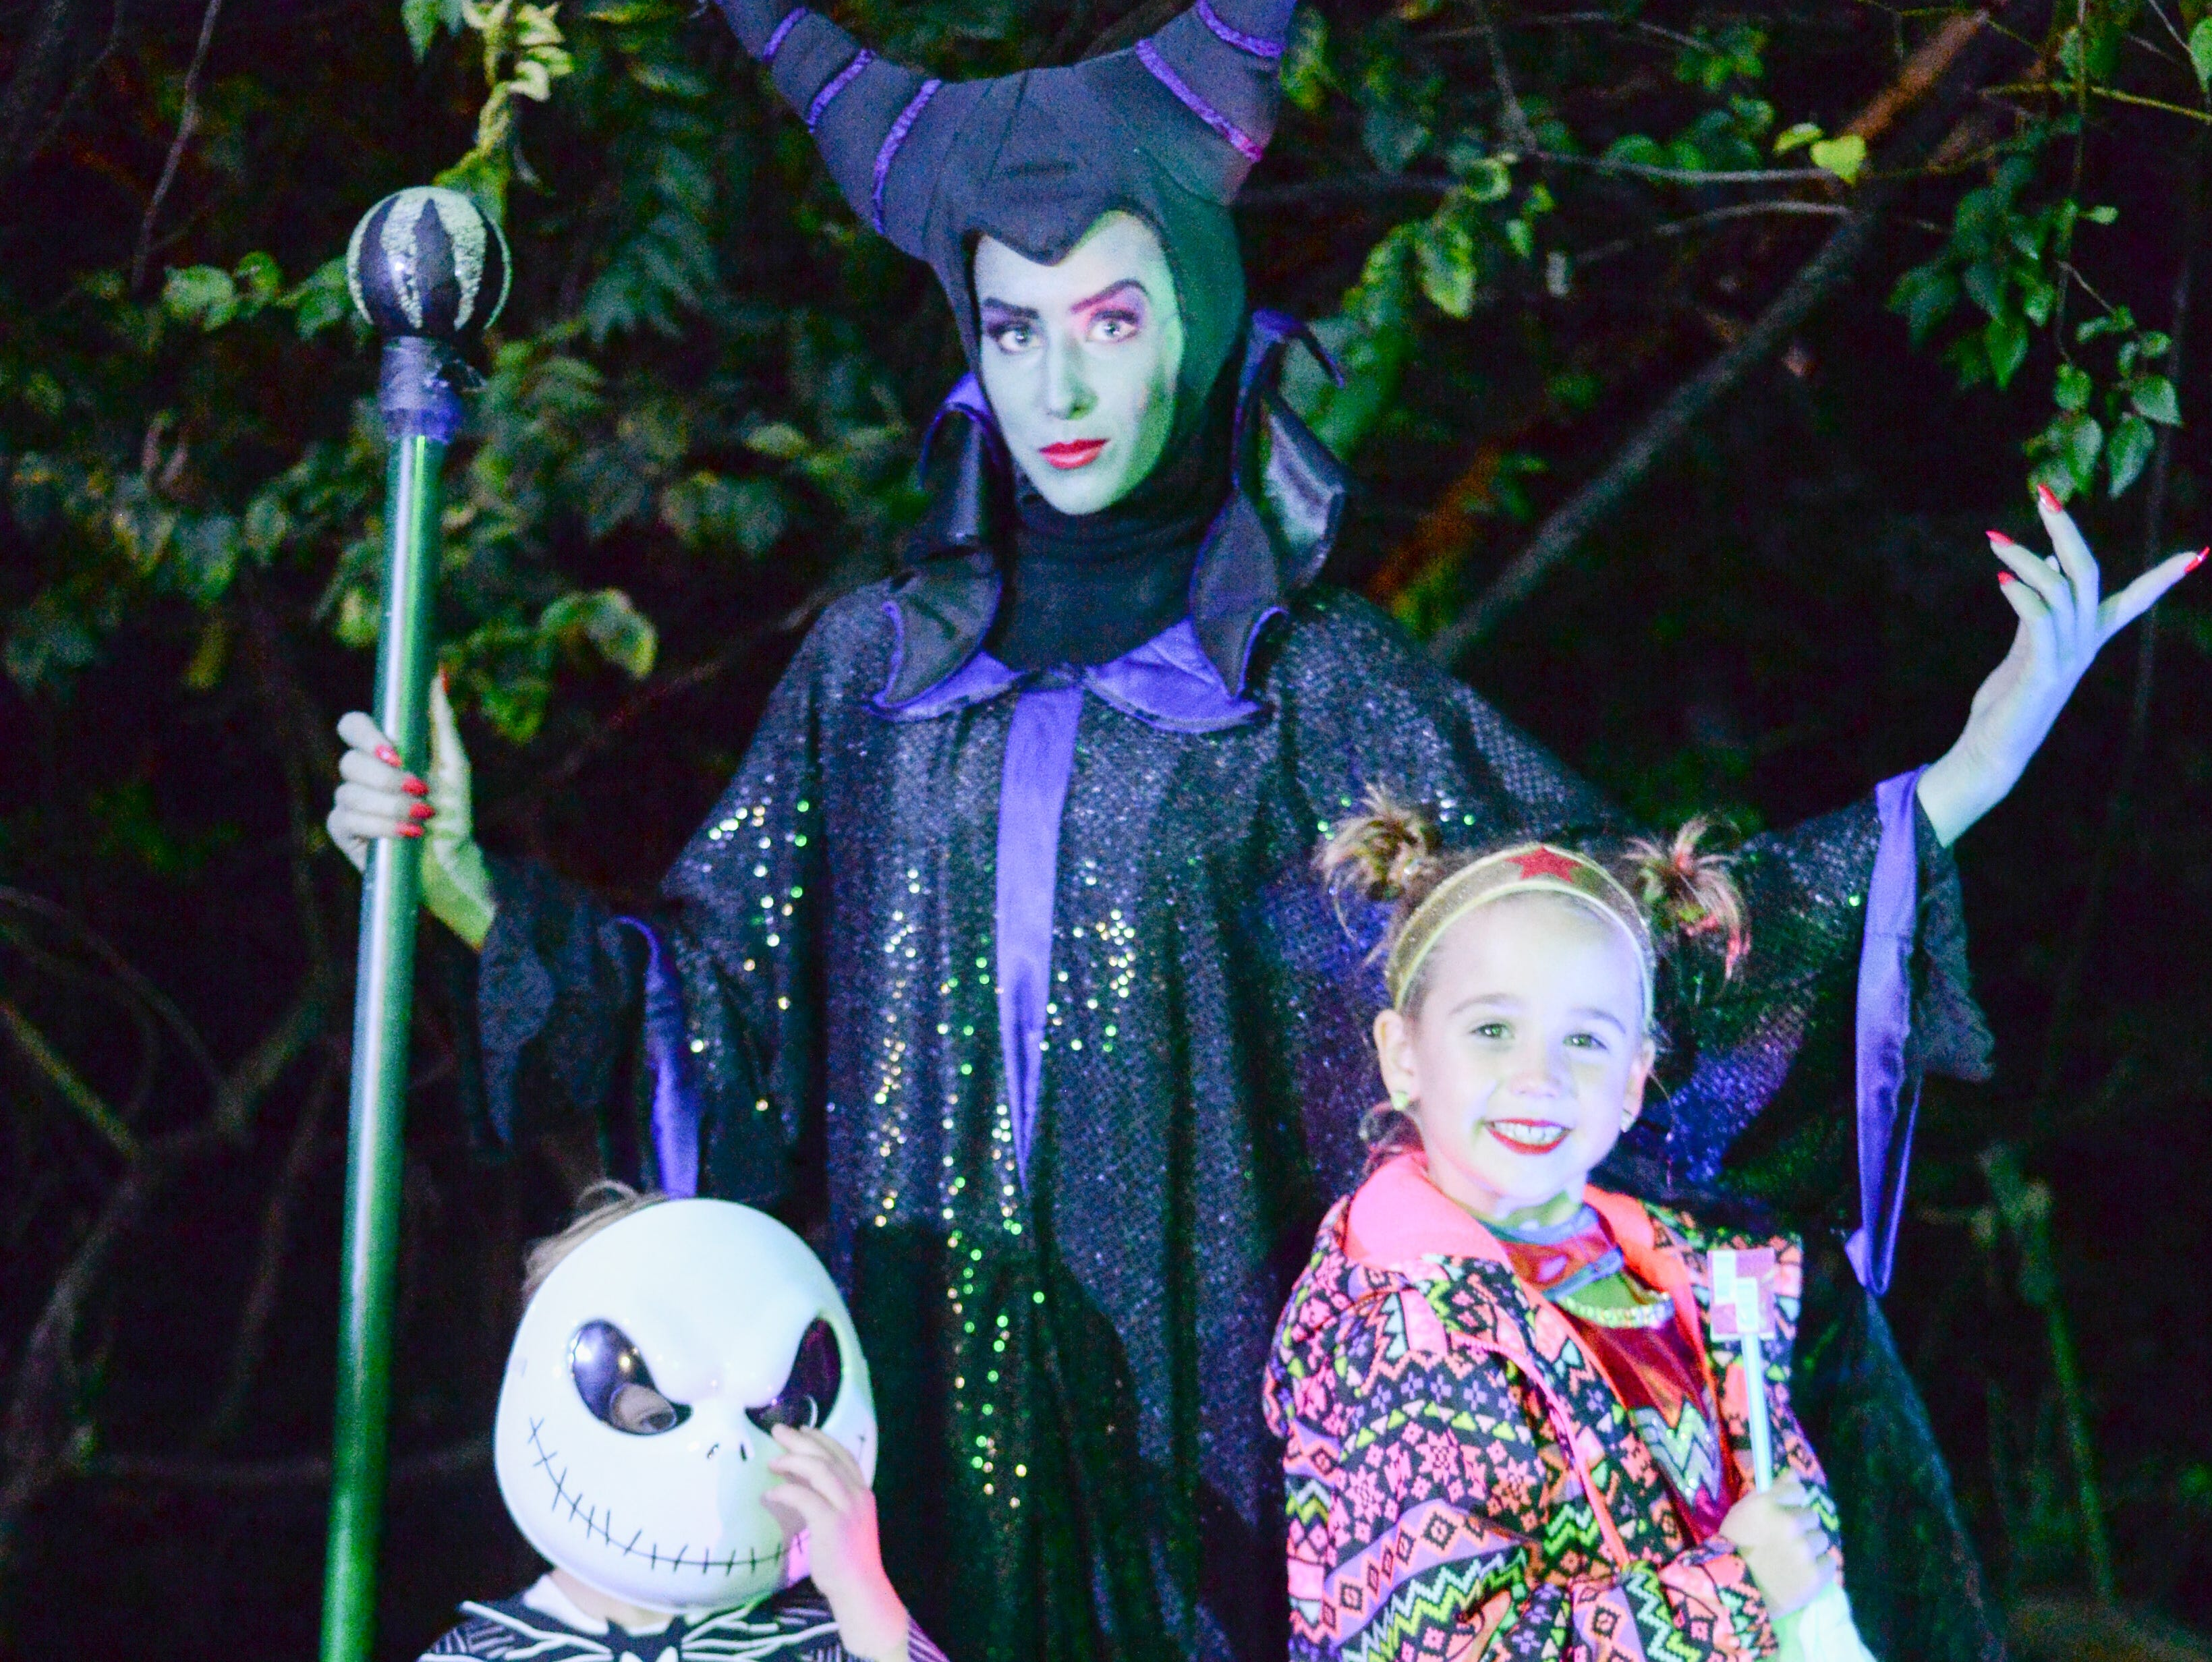 Attendees find surprises on spooky trails during the Castle of Villains trick or treating event at Historic Rock Castle in Hendersonville on Friday, Oct. 26.